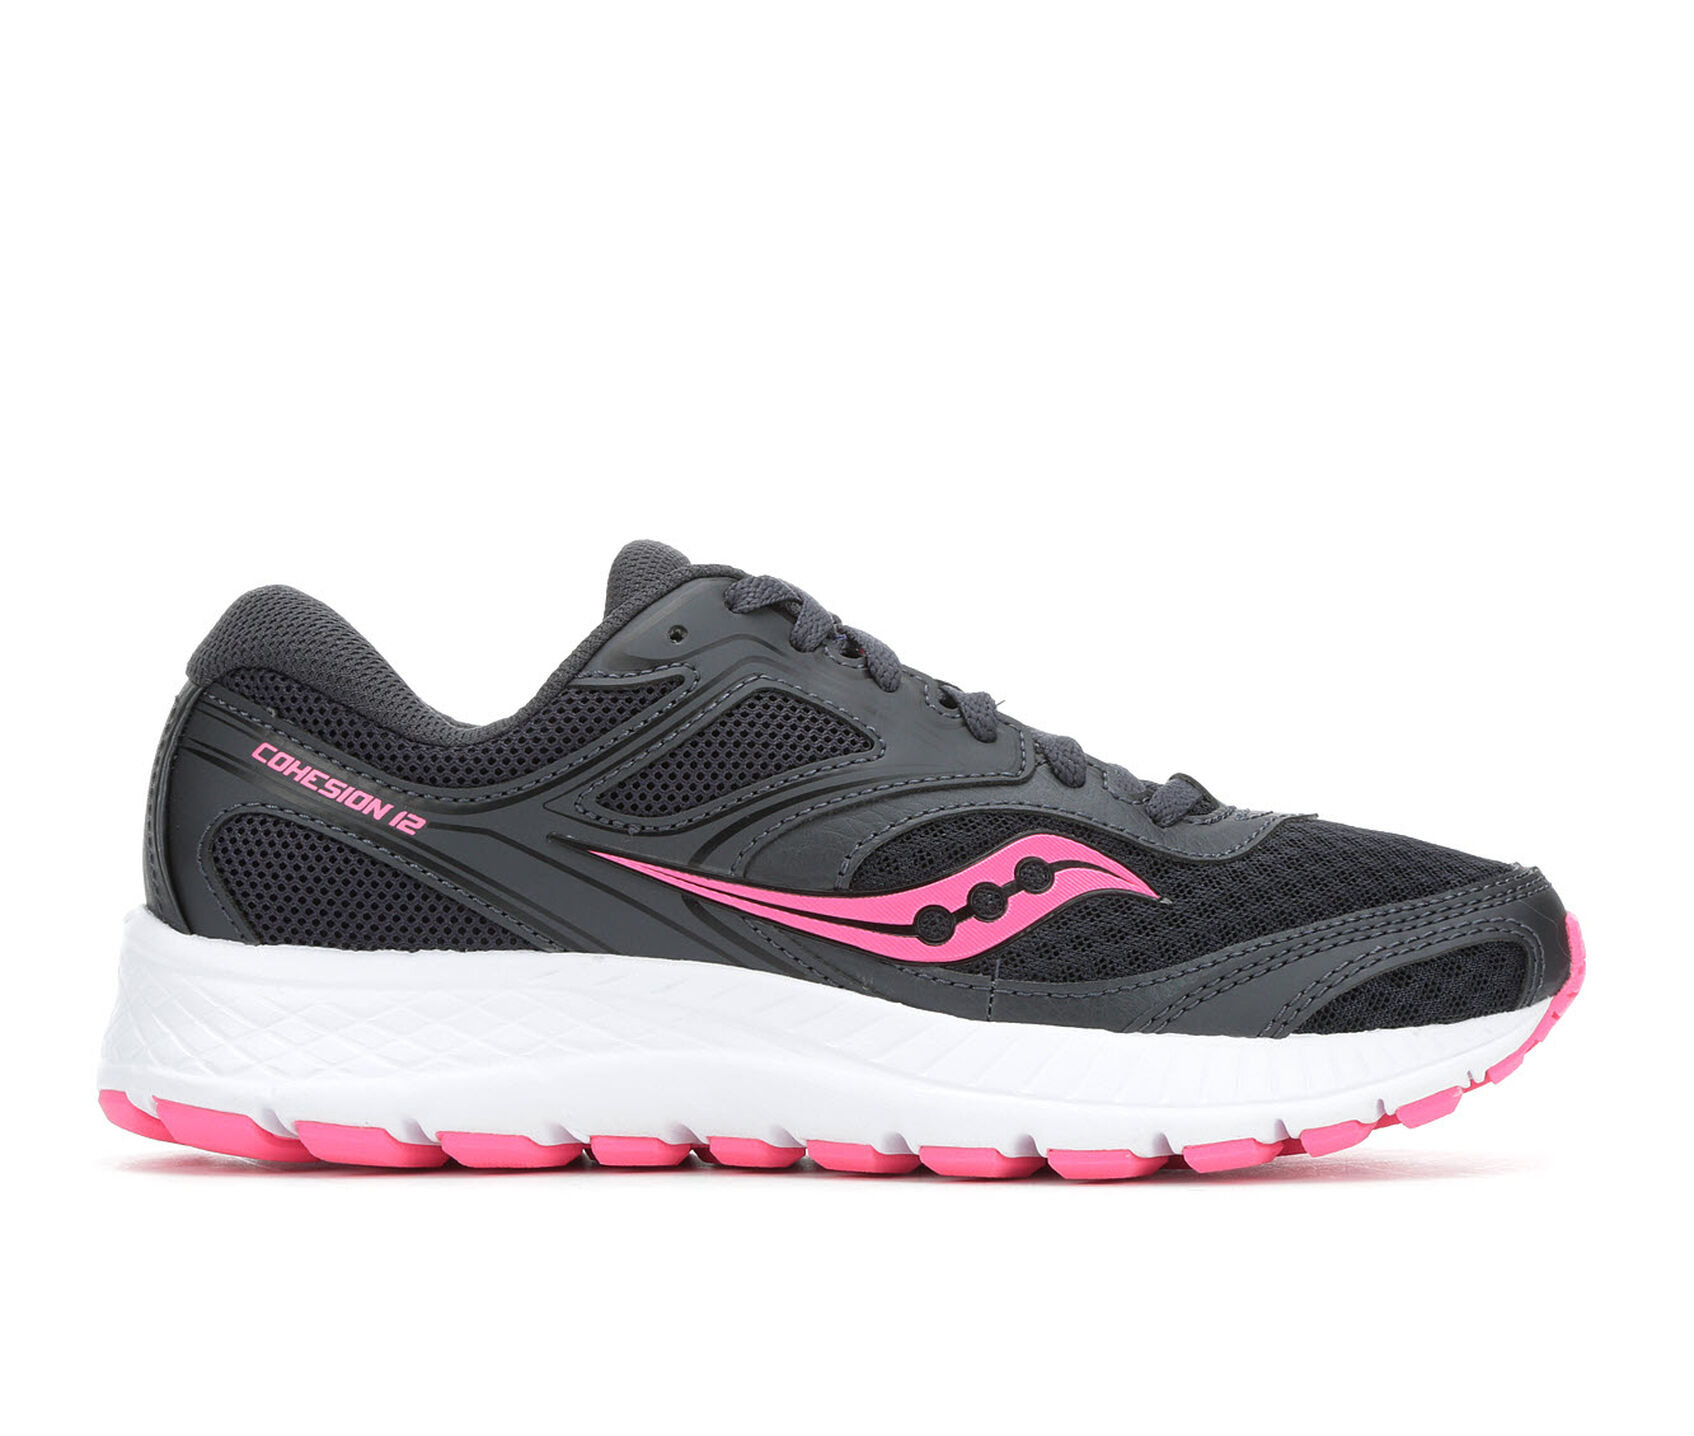 b2b0cfa54b Women's Saucony Cohesion 12 Running Shoes